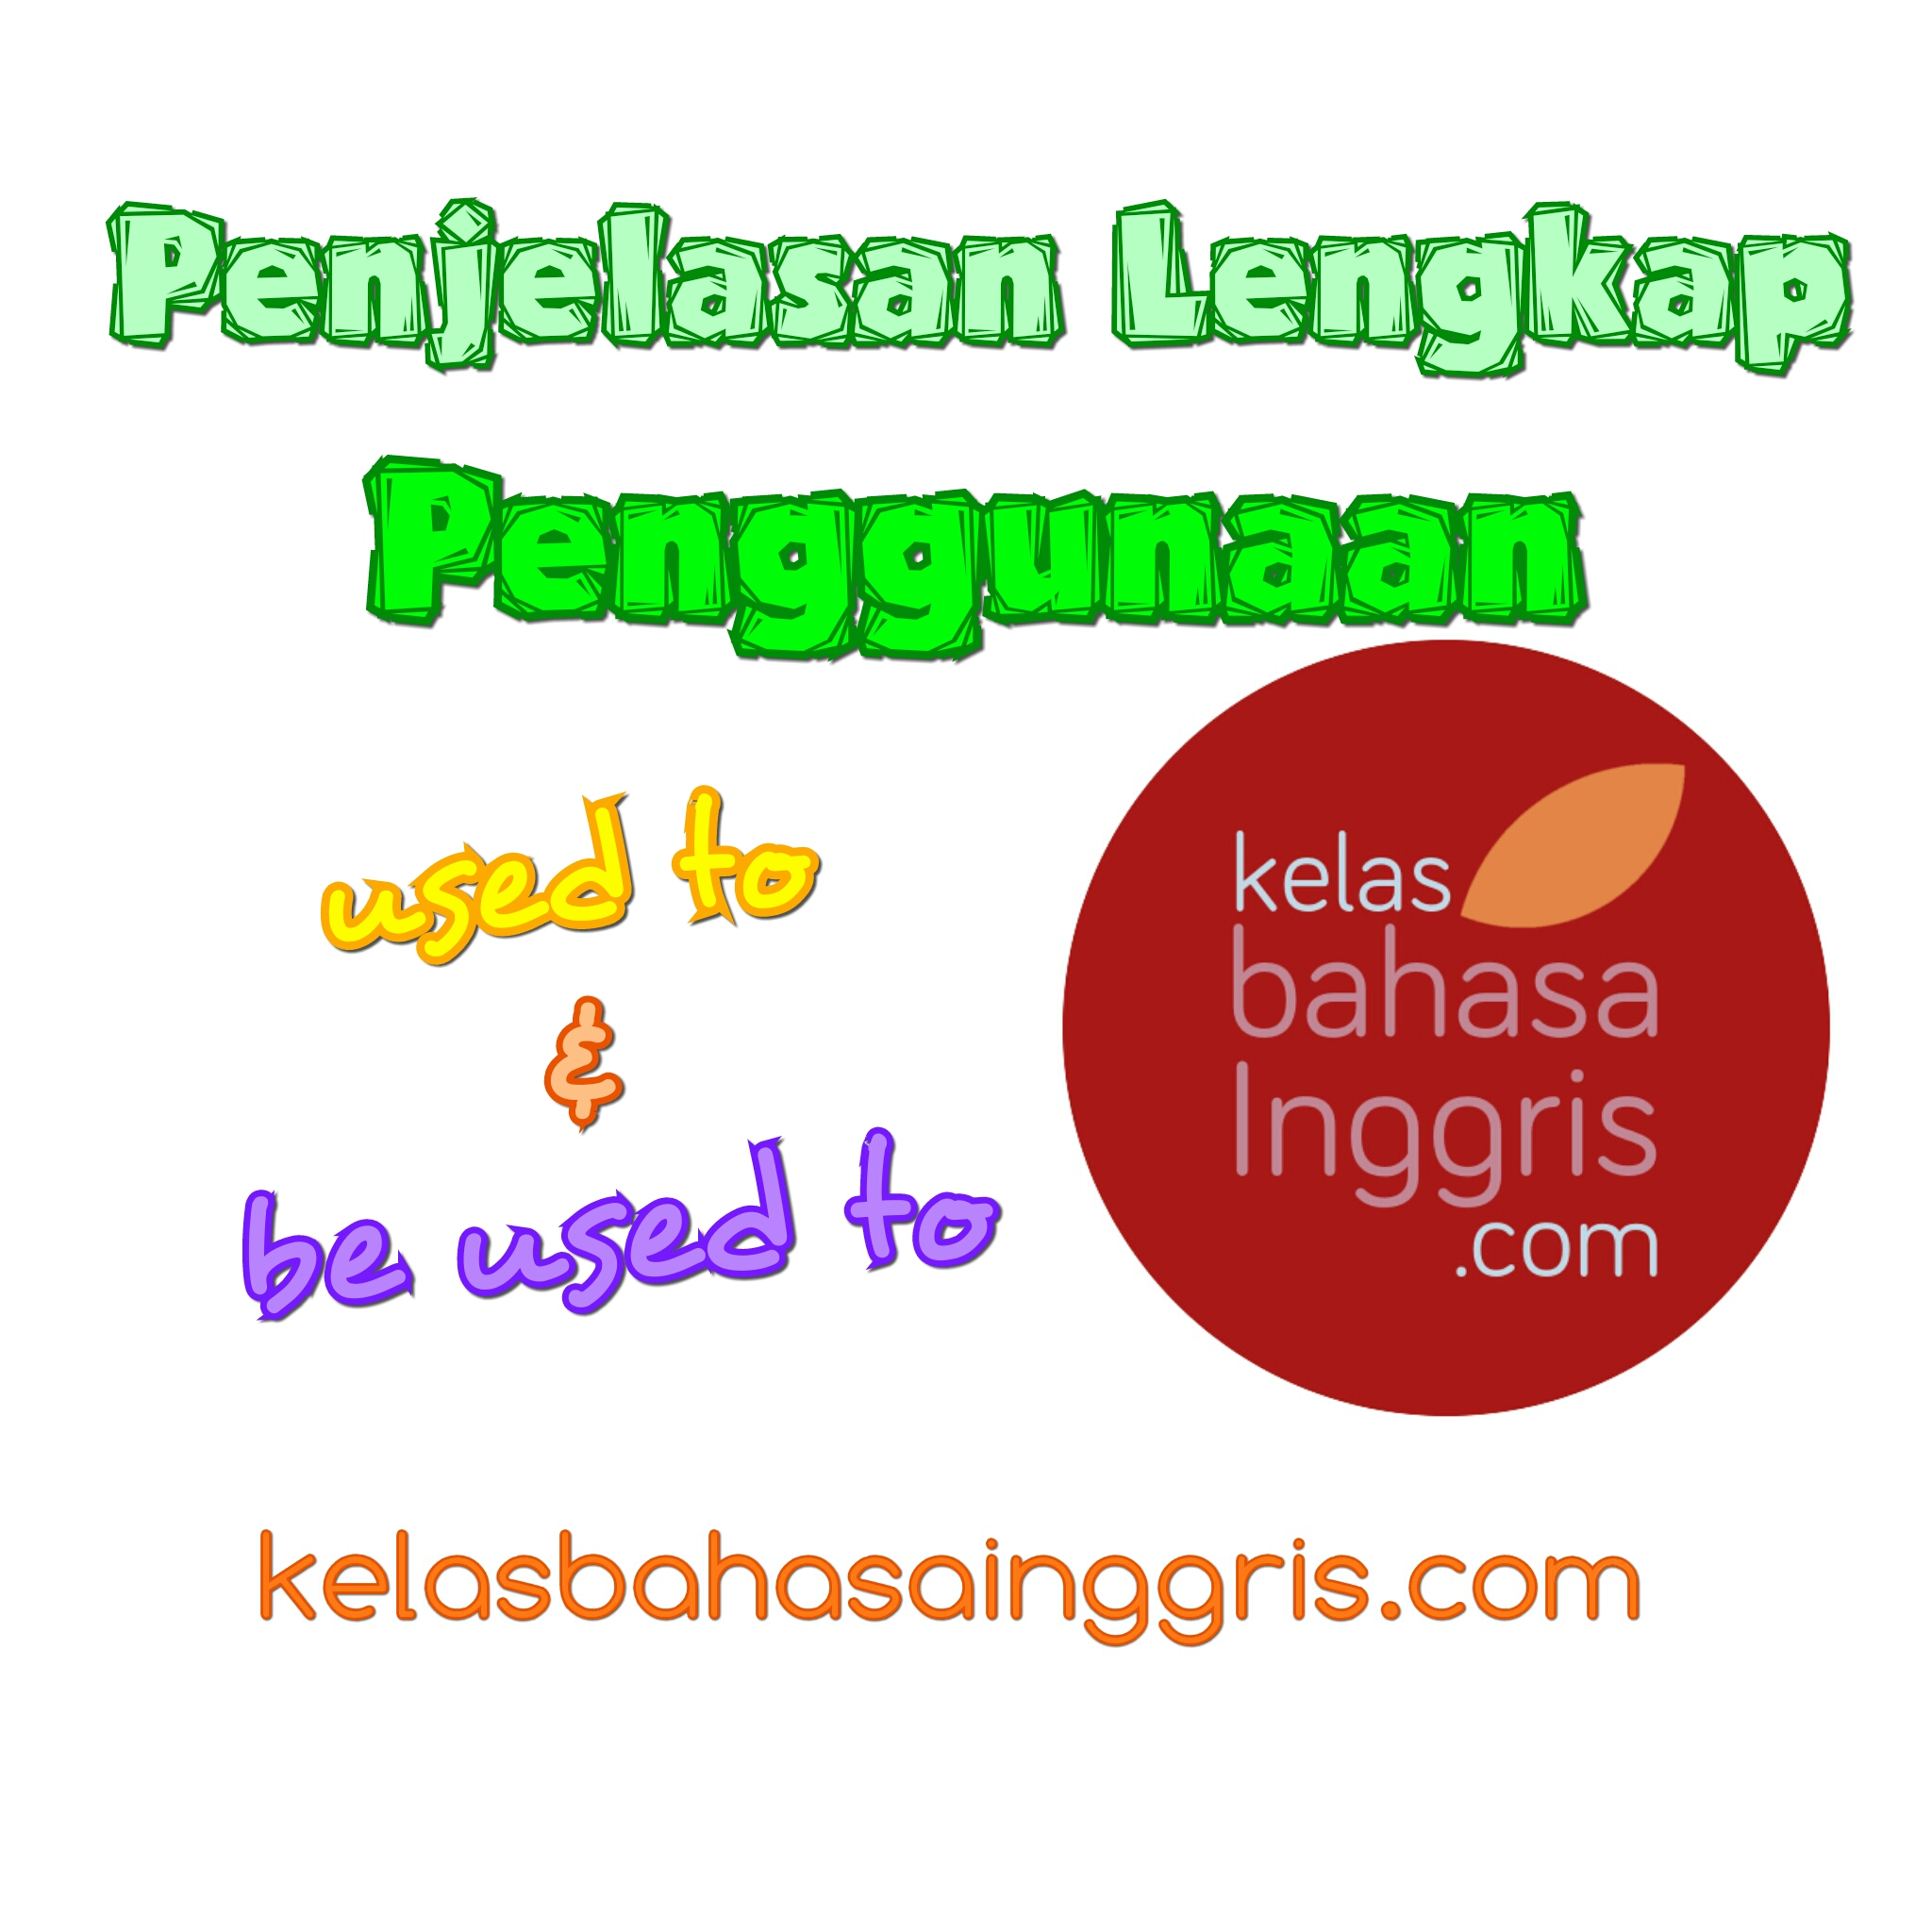 Penjelasan Lengkap used to dan be used to